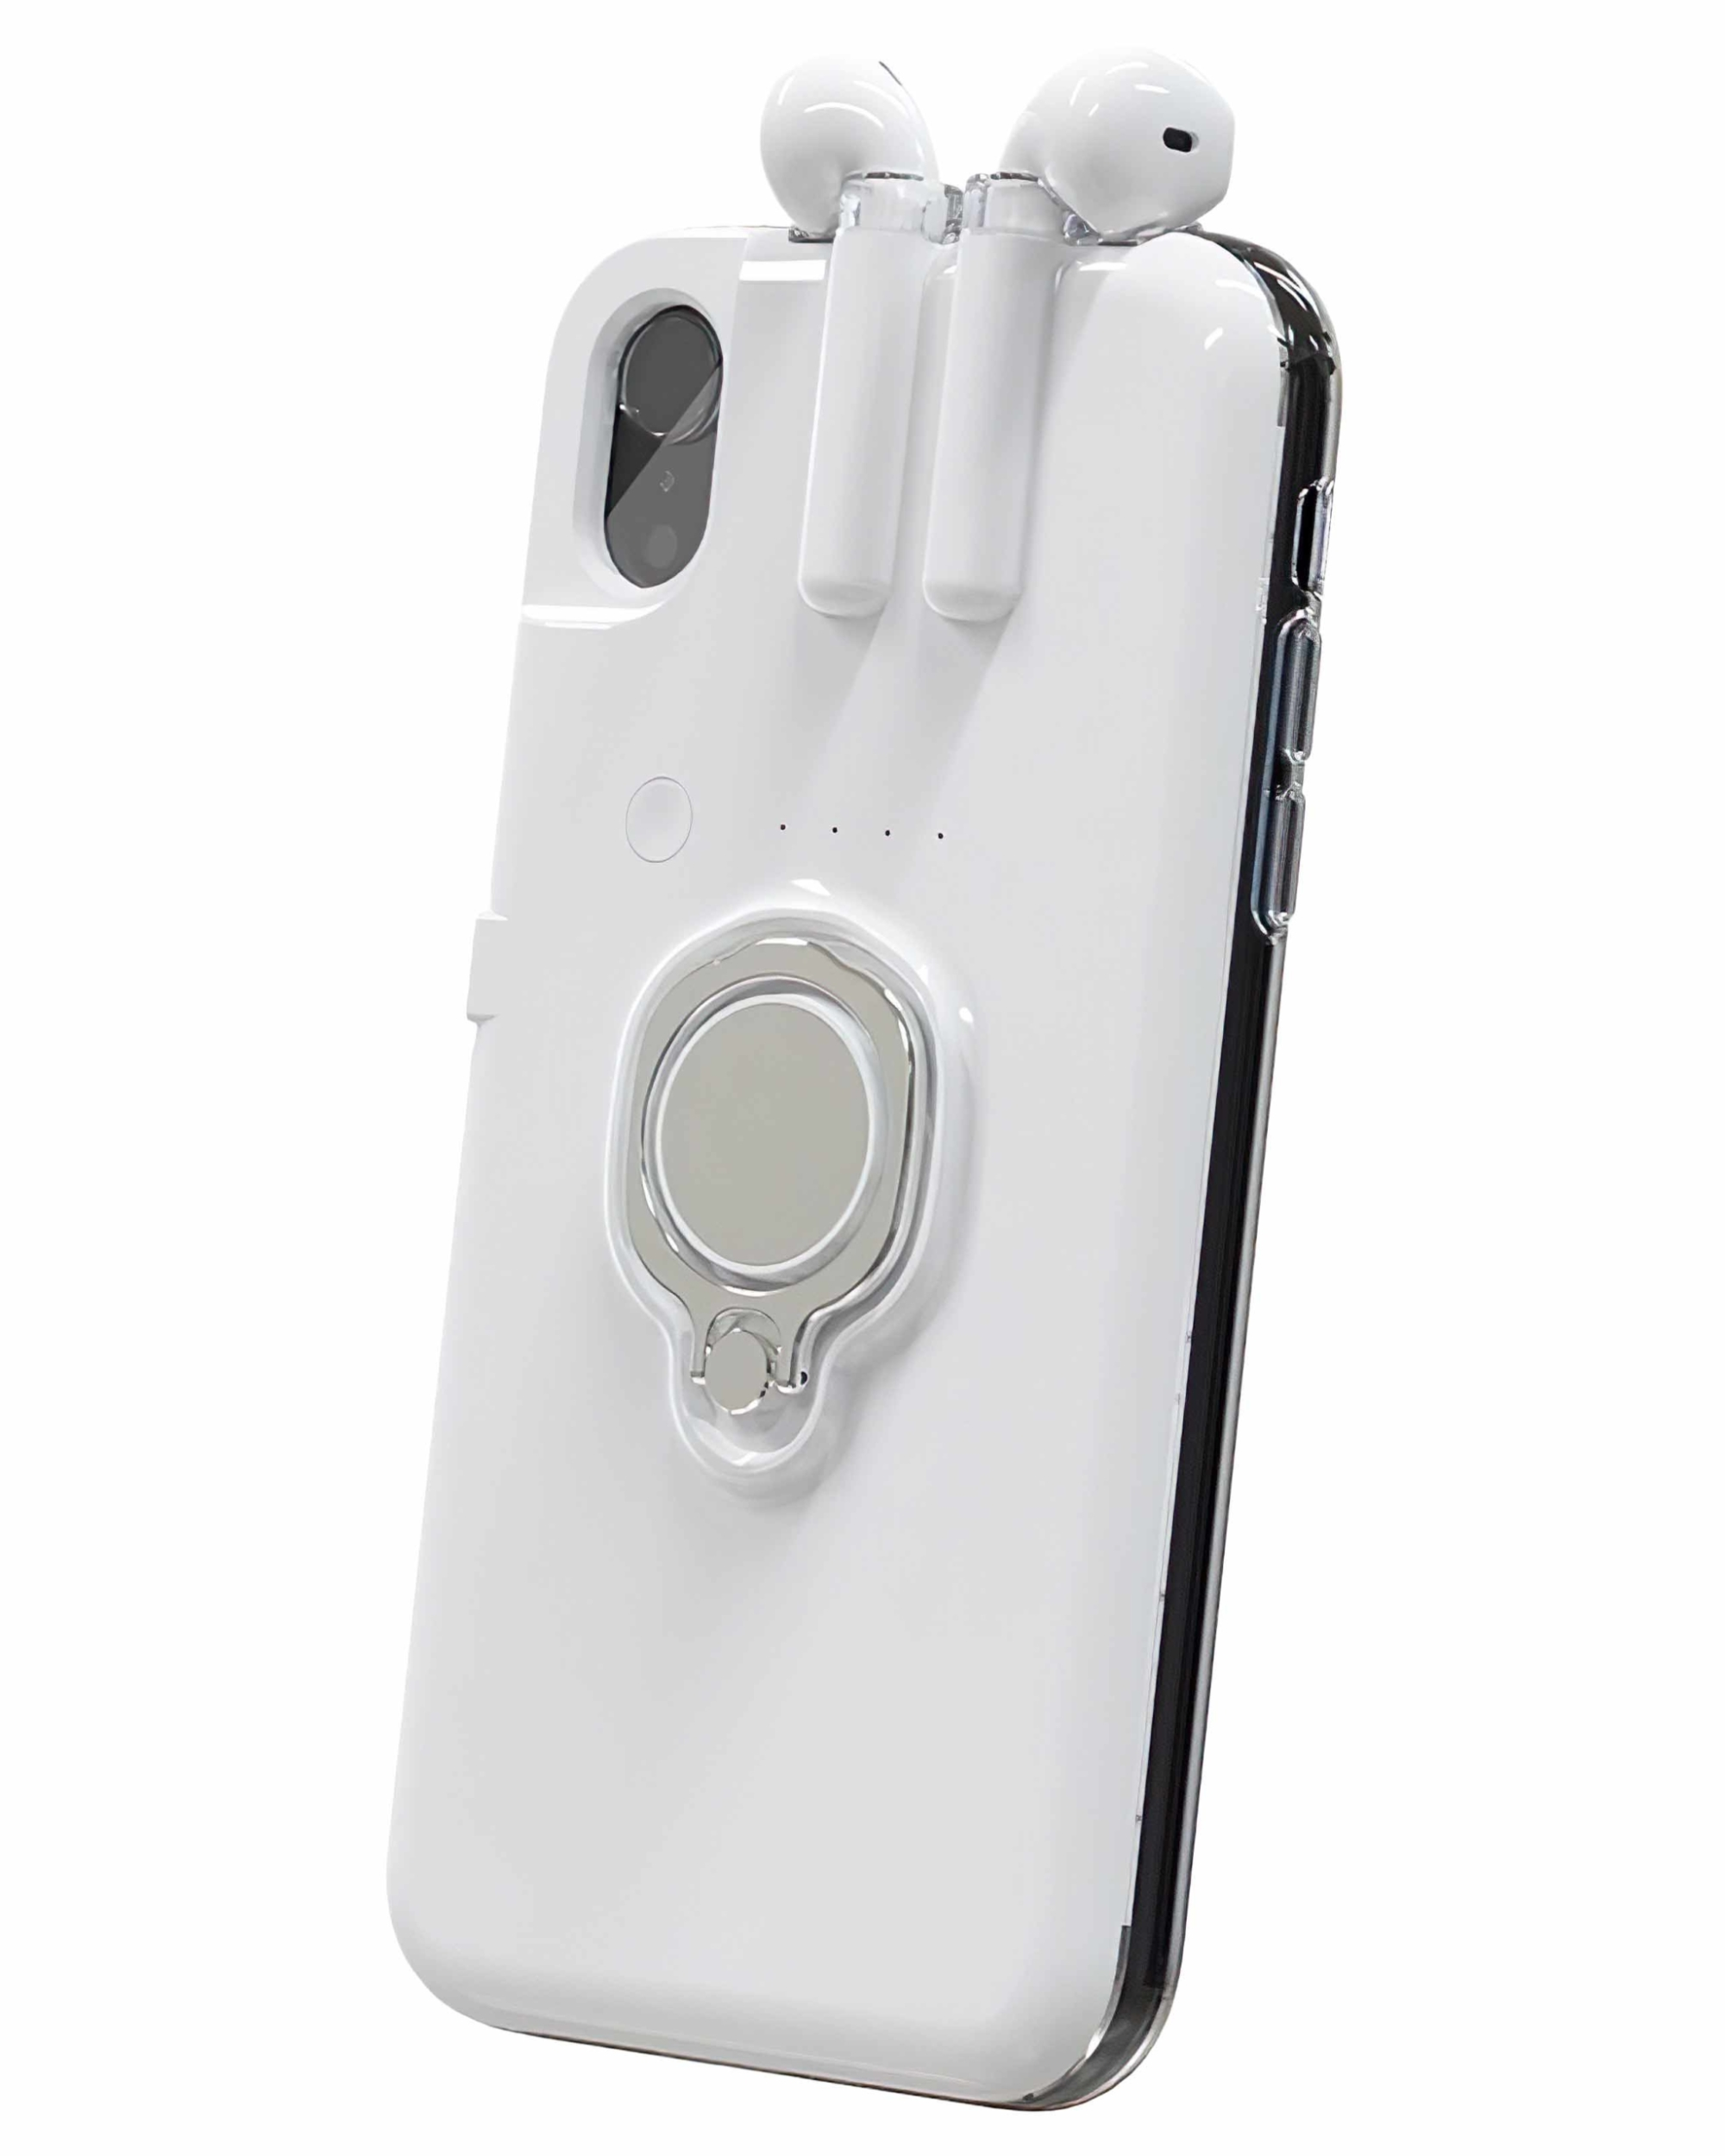 3-In-1 iPhone Case & AirPods Charger